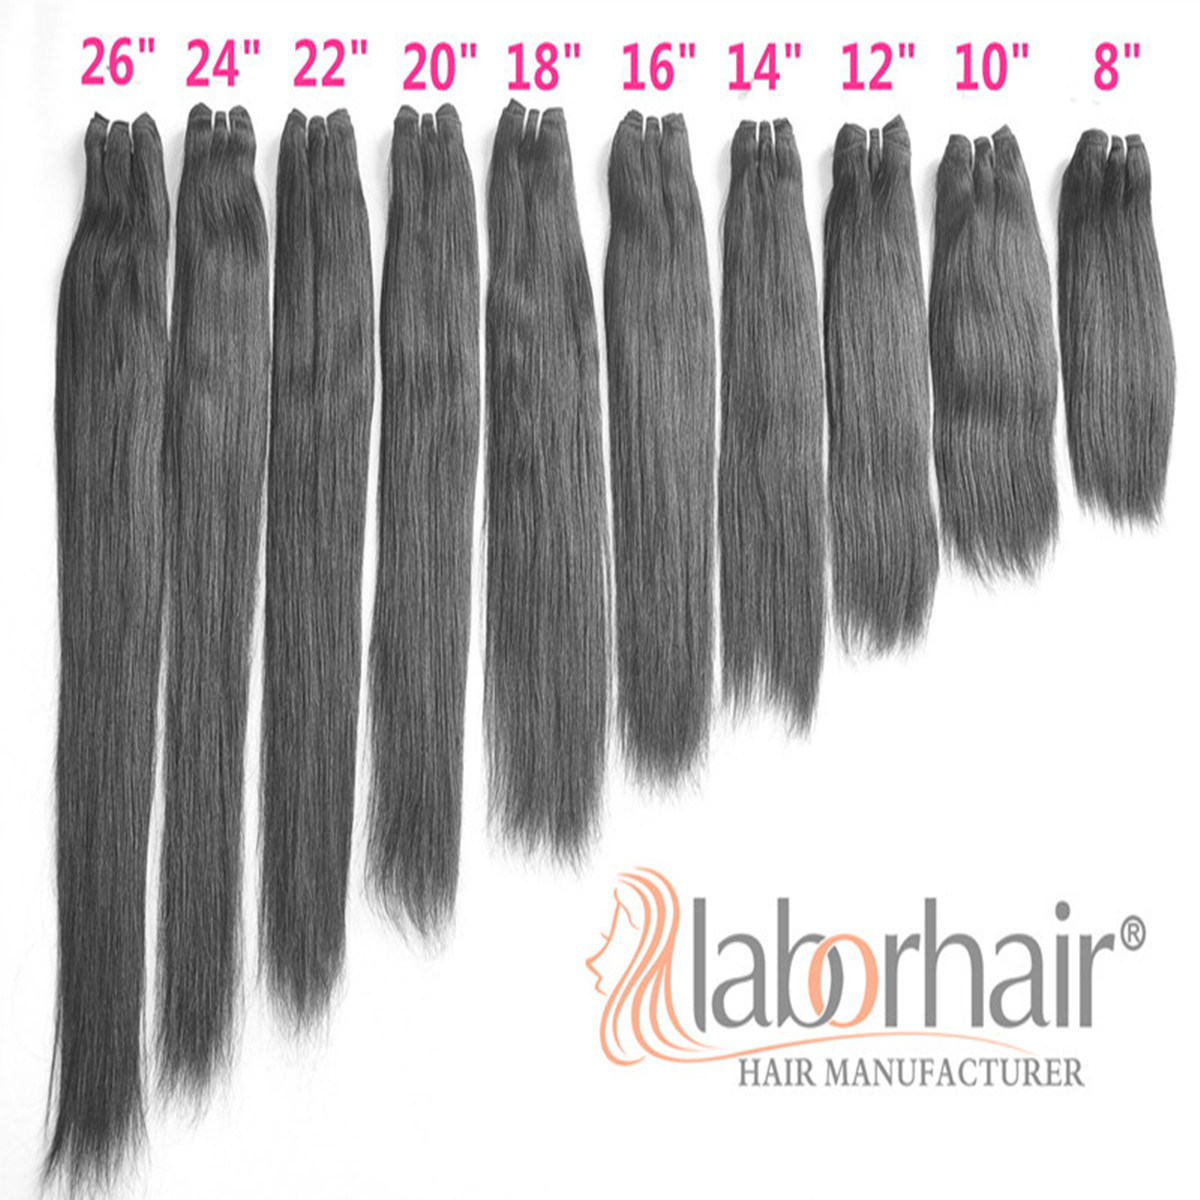 9A Labor Hair Products Brazilian Hair Weave Bundles Straight Virgin Hair 105g, Top Human Hair Extension Bundles